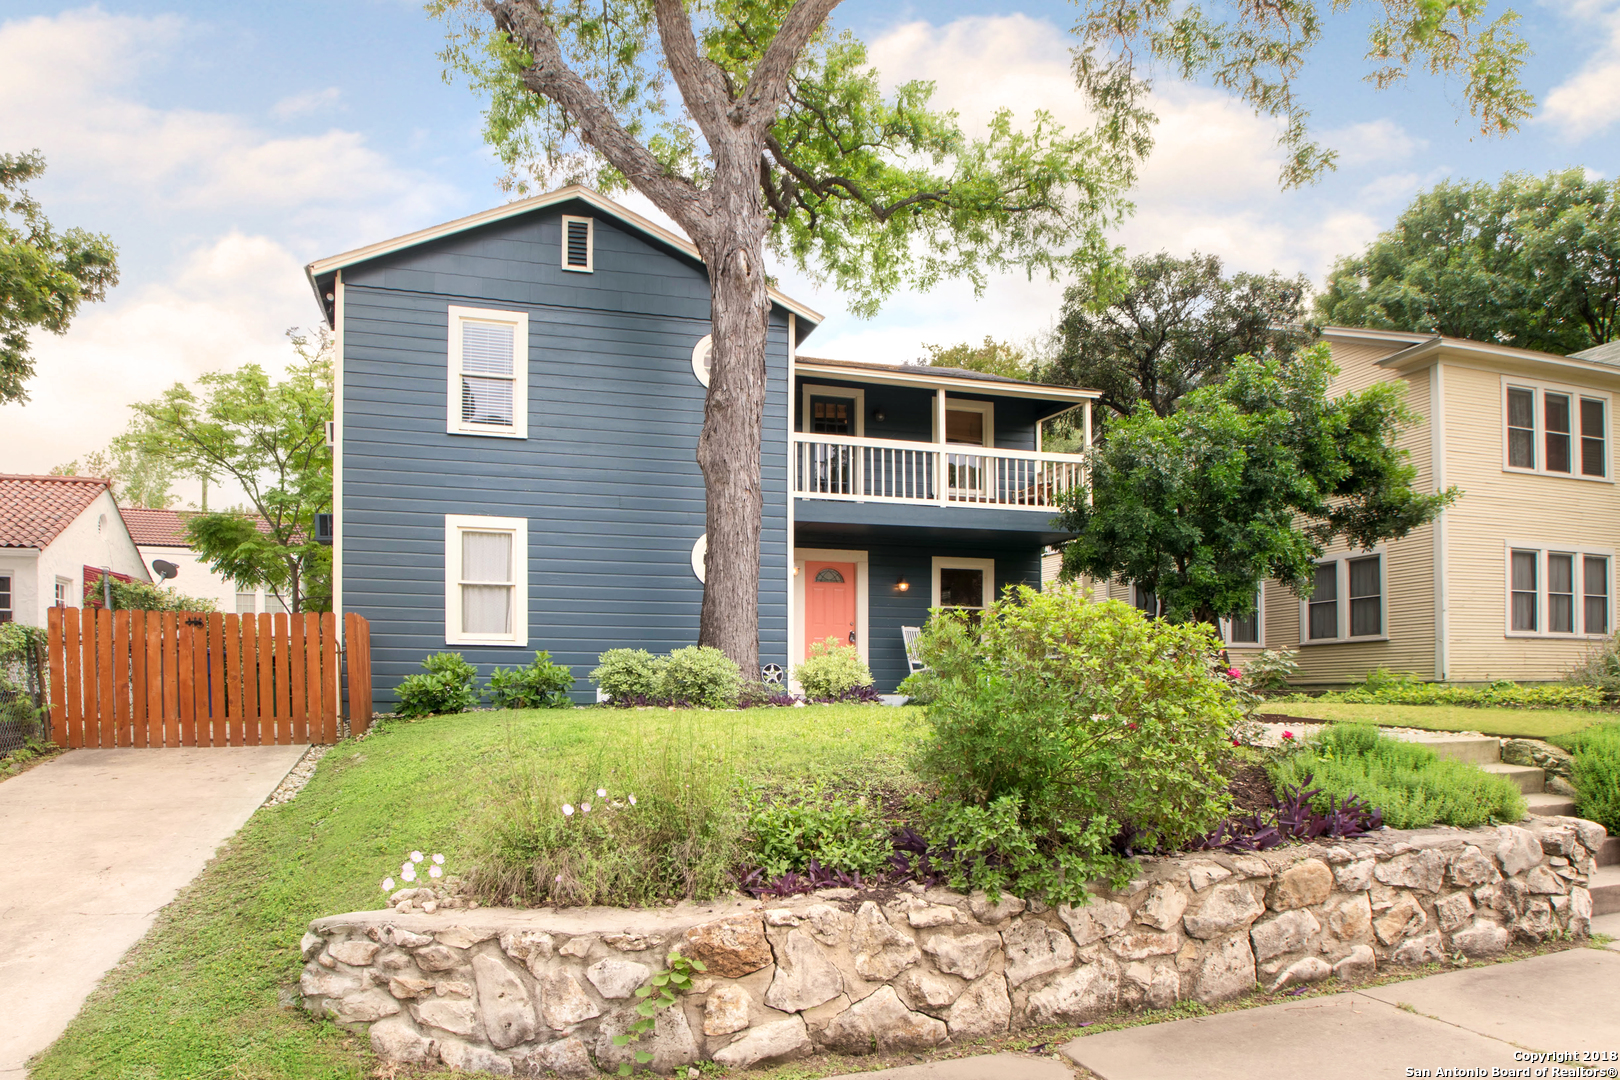 1526 W HUISACHE AVE-2